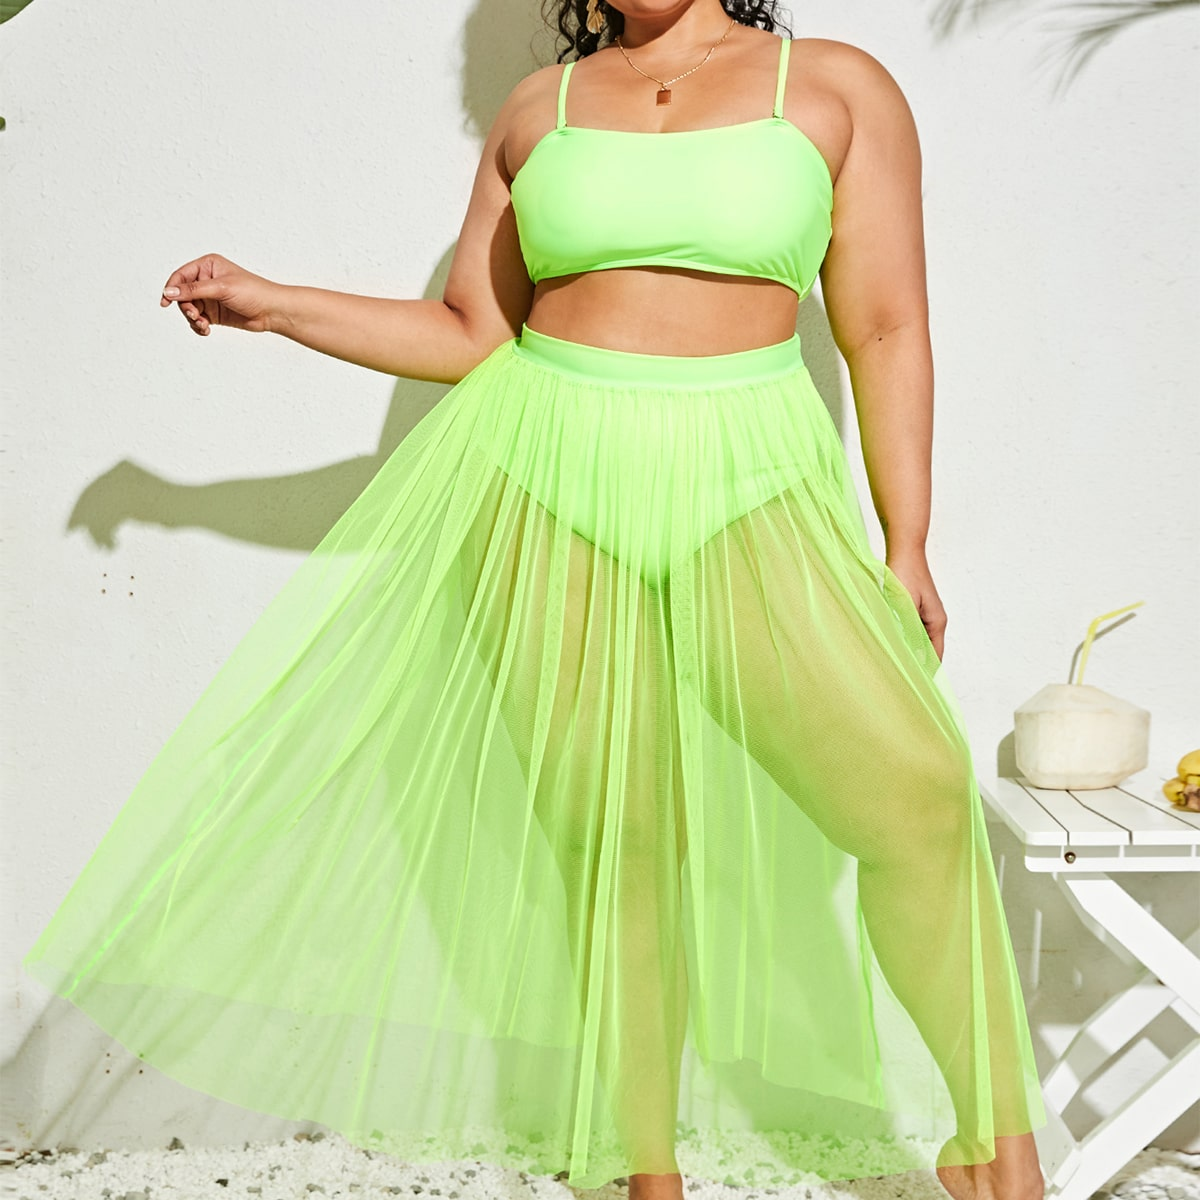 3pack Plus Neon Lime Bikini Swimsuit & Mesh Cover Up, SHEIN  - buy with discount